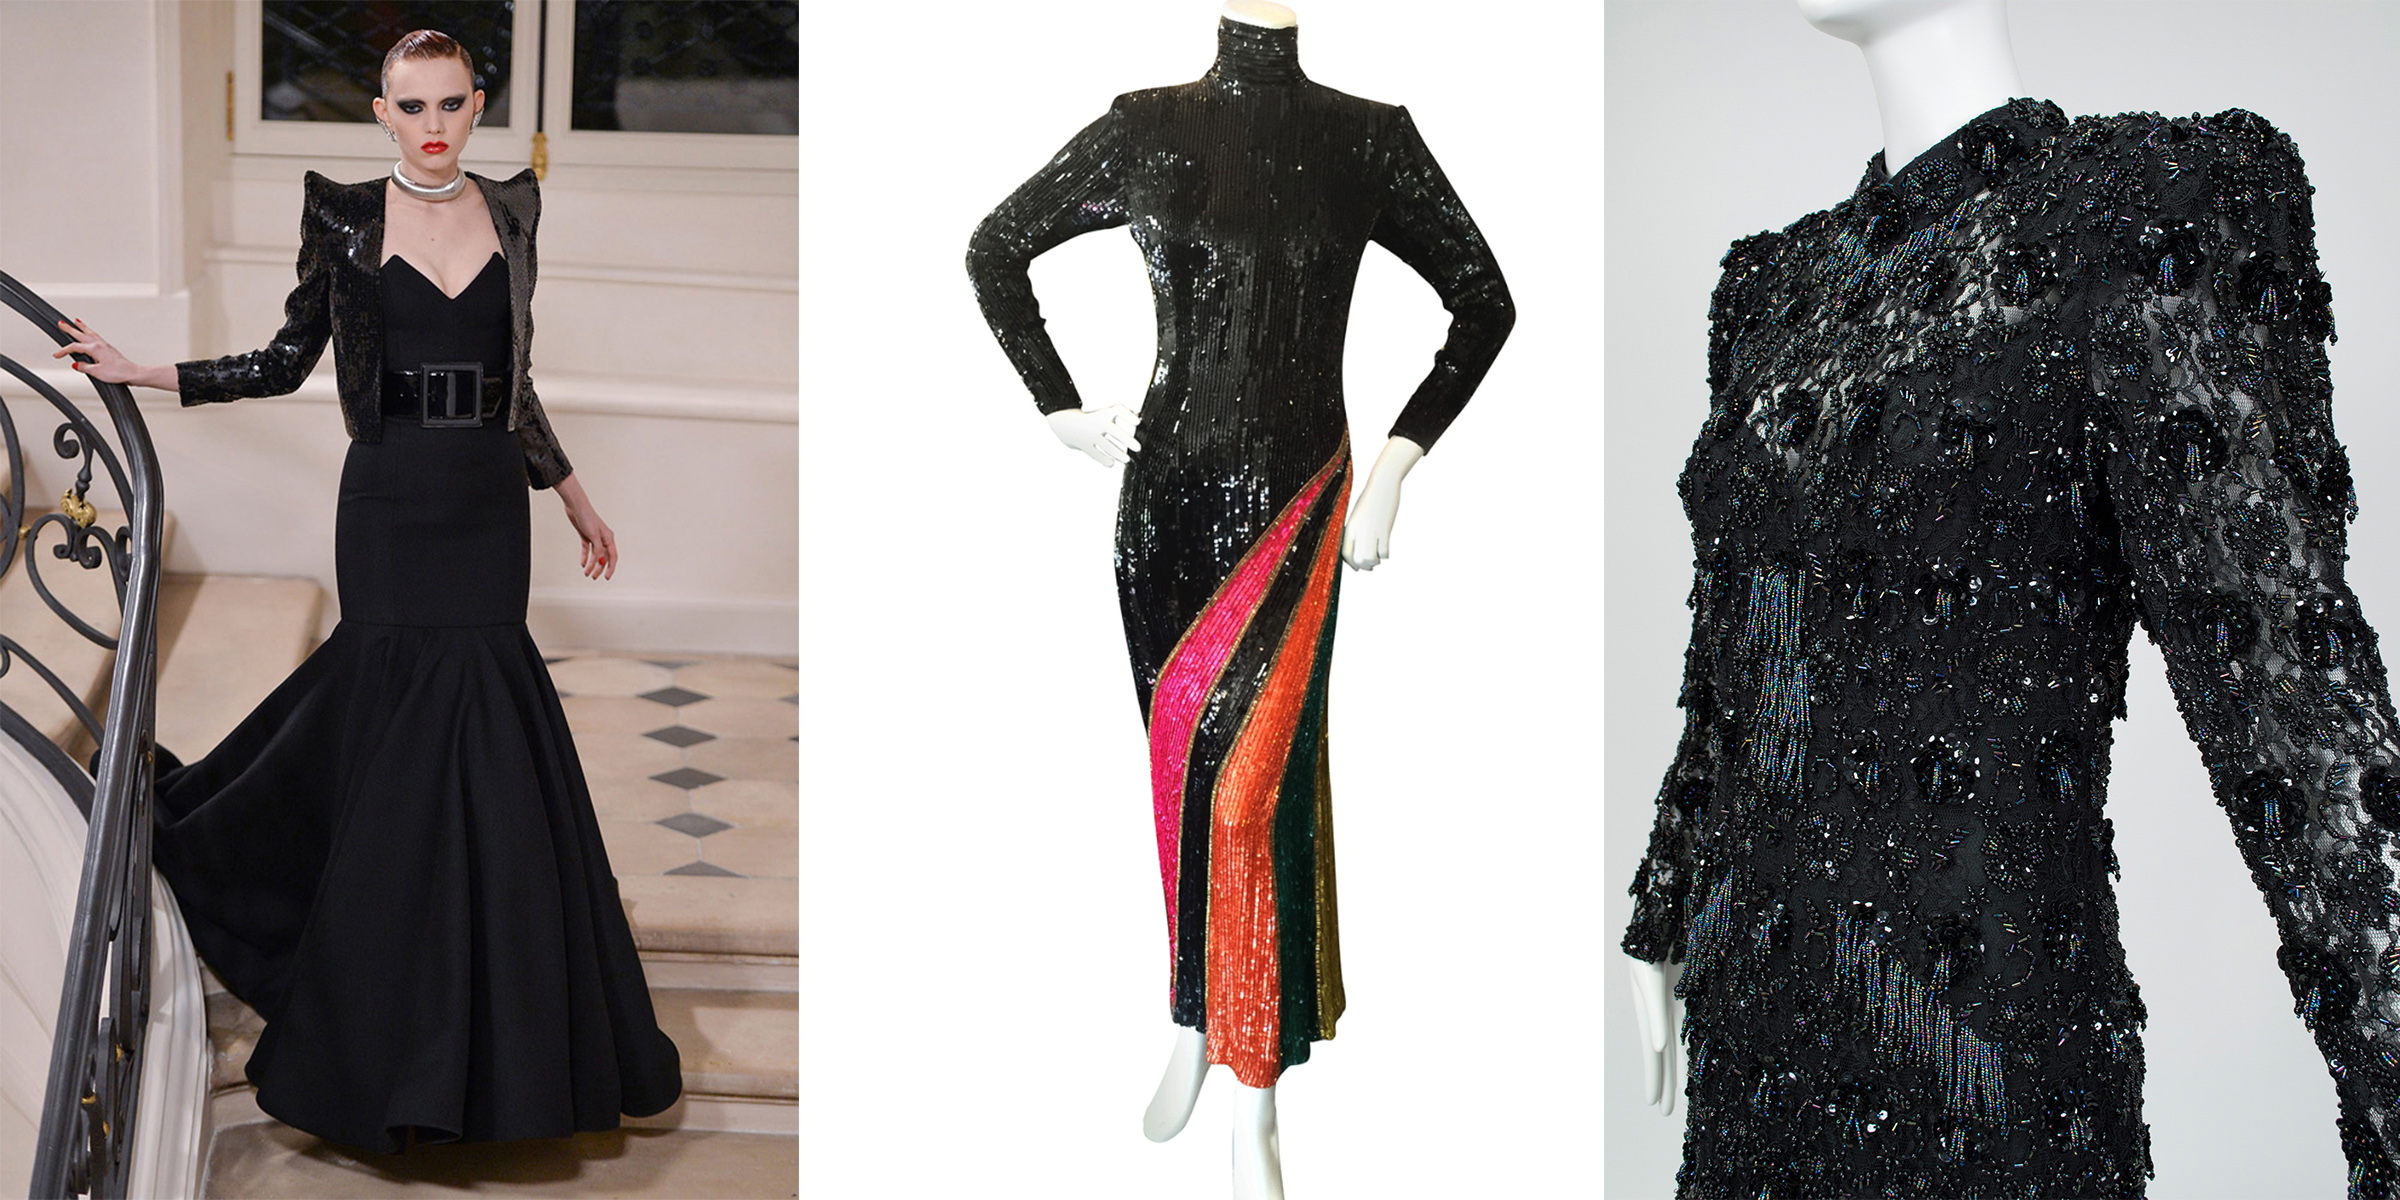 afbc49a3780 Saint Laurent gown (A/W 2016) compared with two similar vintage gowns at